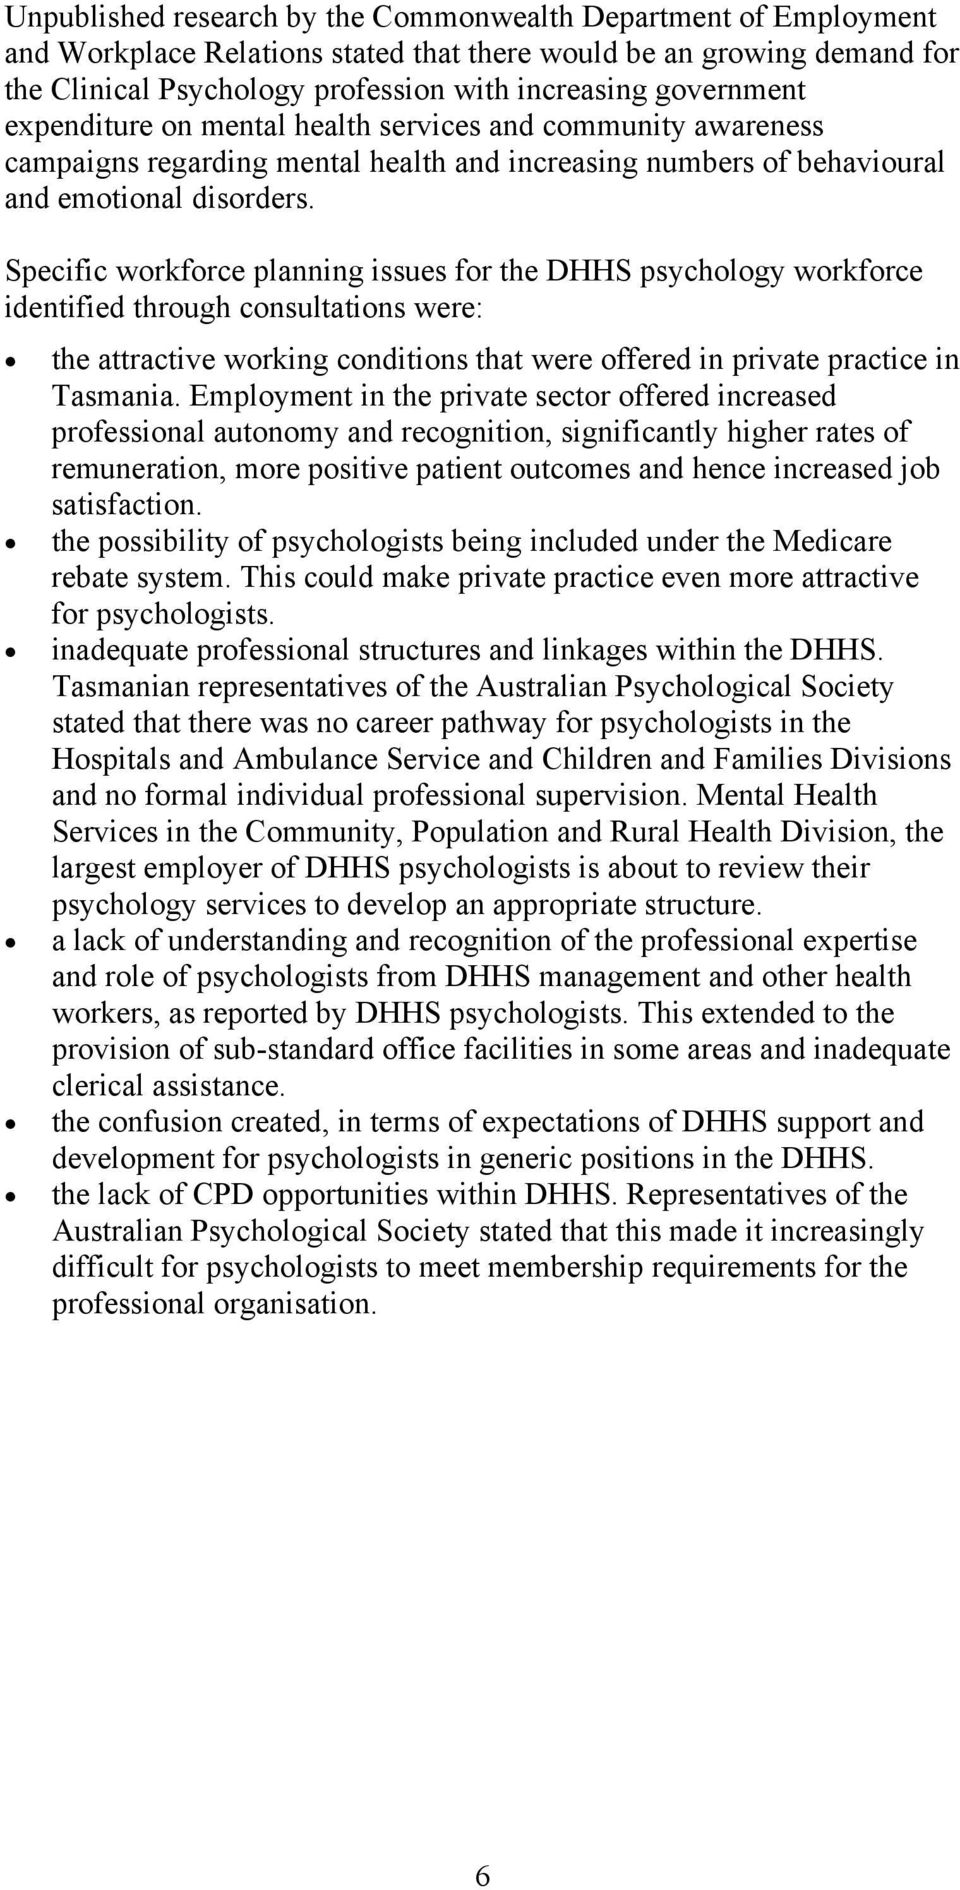 Specific workforce planning issues for the DHHS psychology workforce identified through consultations were: the attractive working conditions that were offered in private practice in Tasmania.